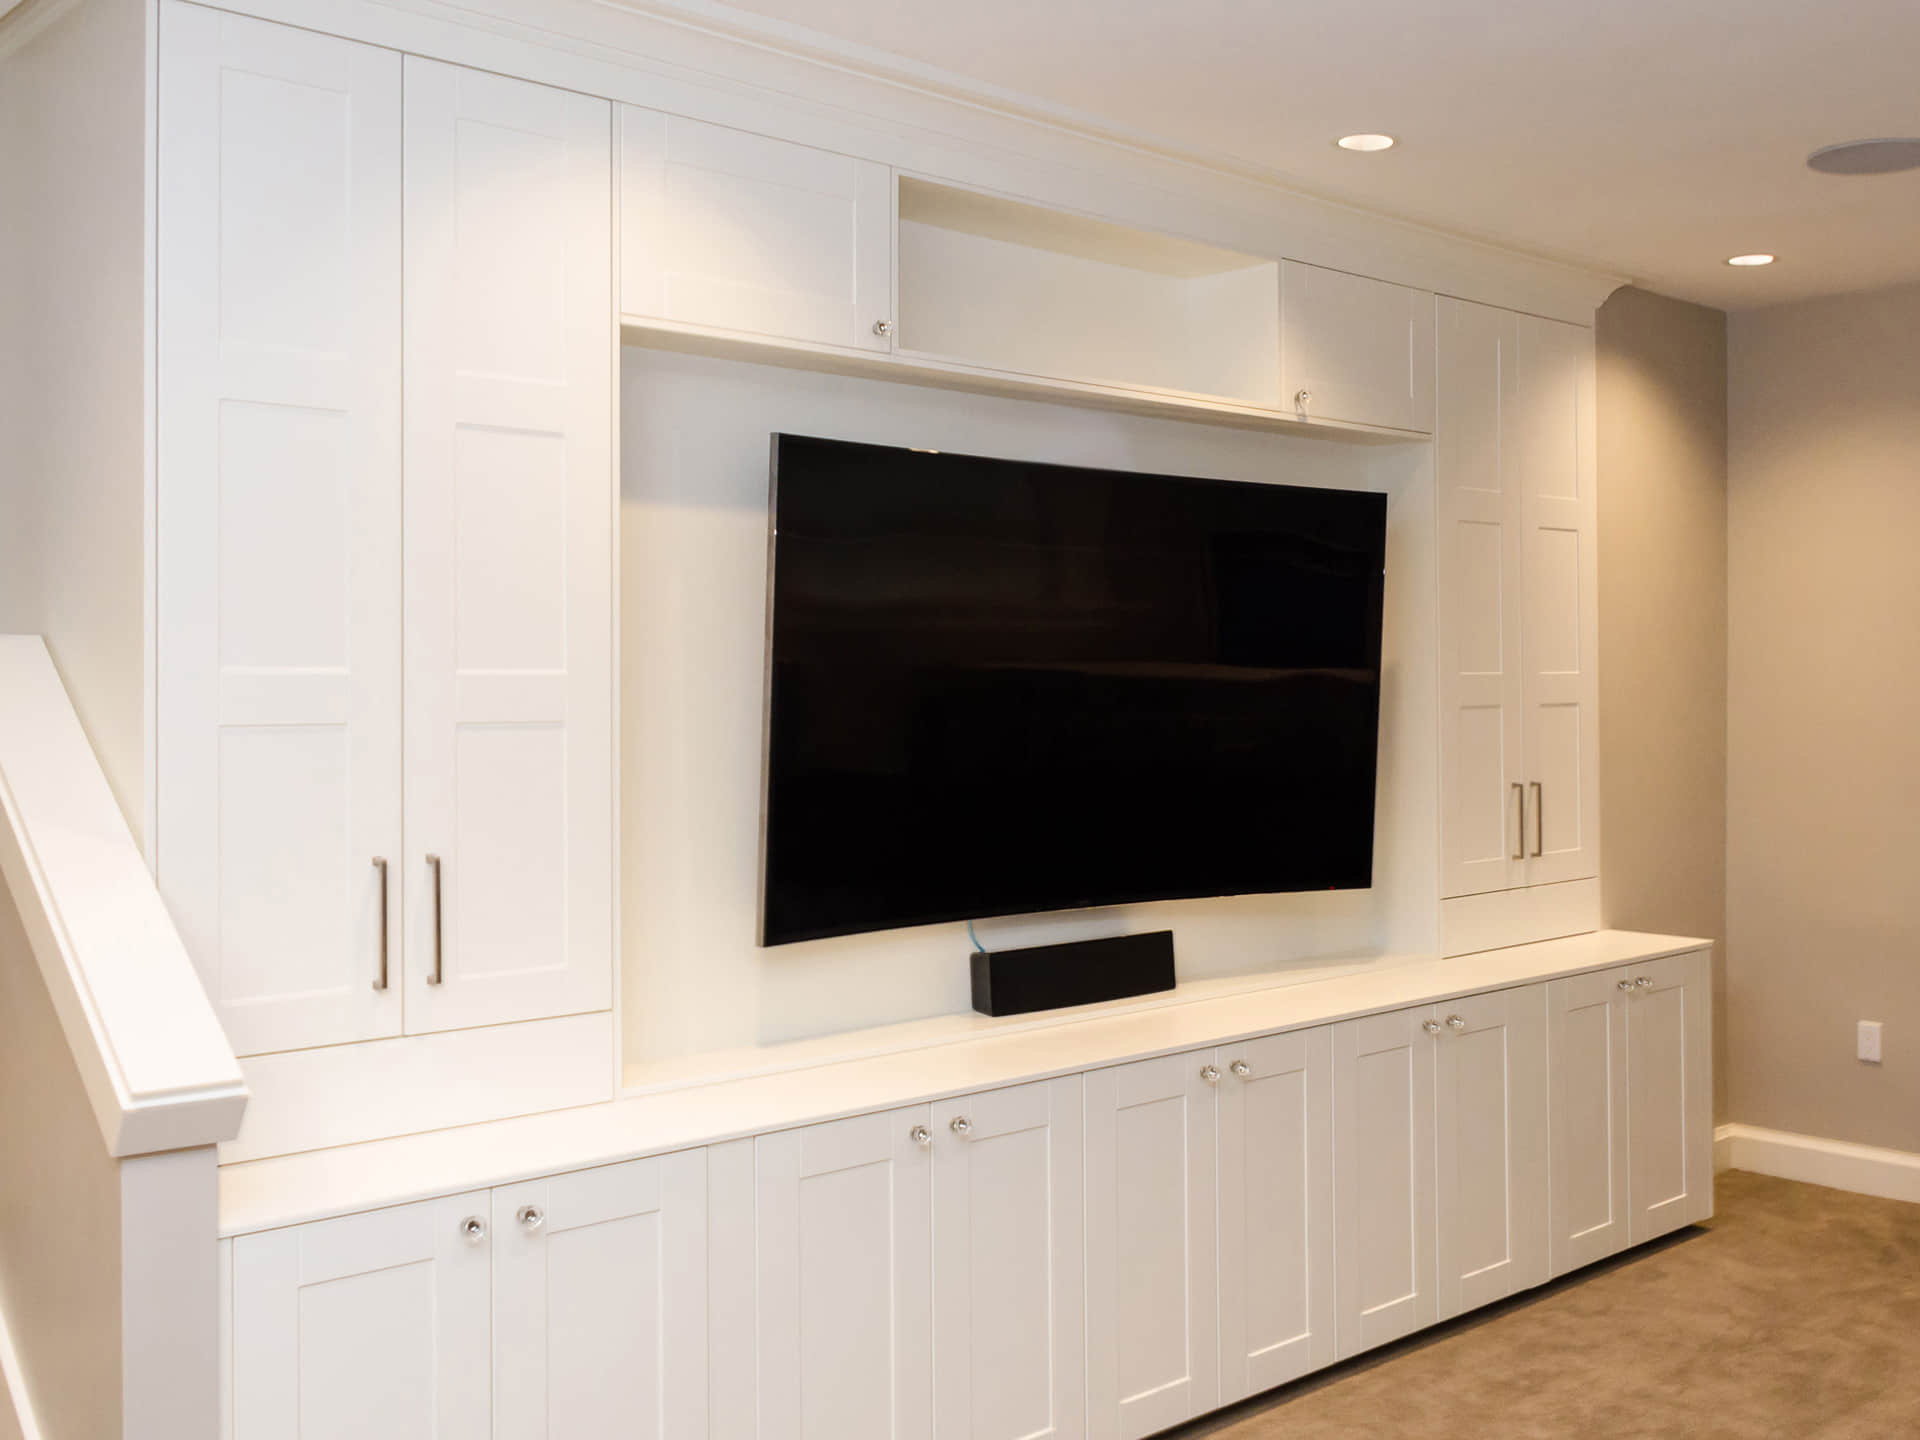 Design Idea - Living Room Entertainment Center